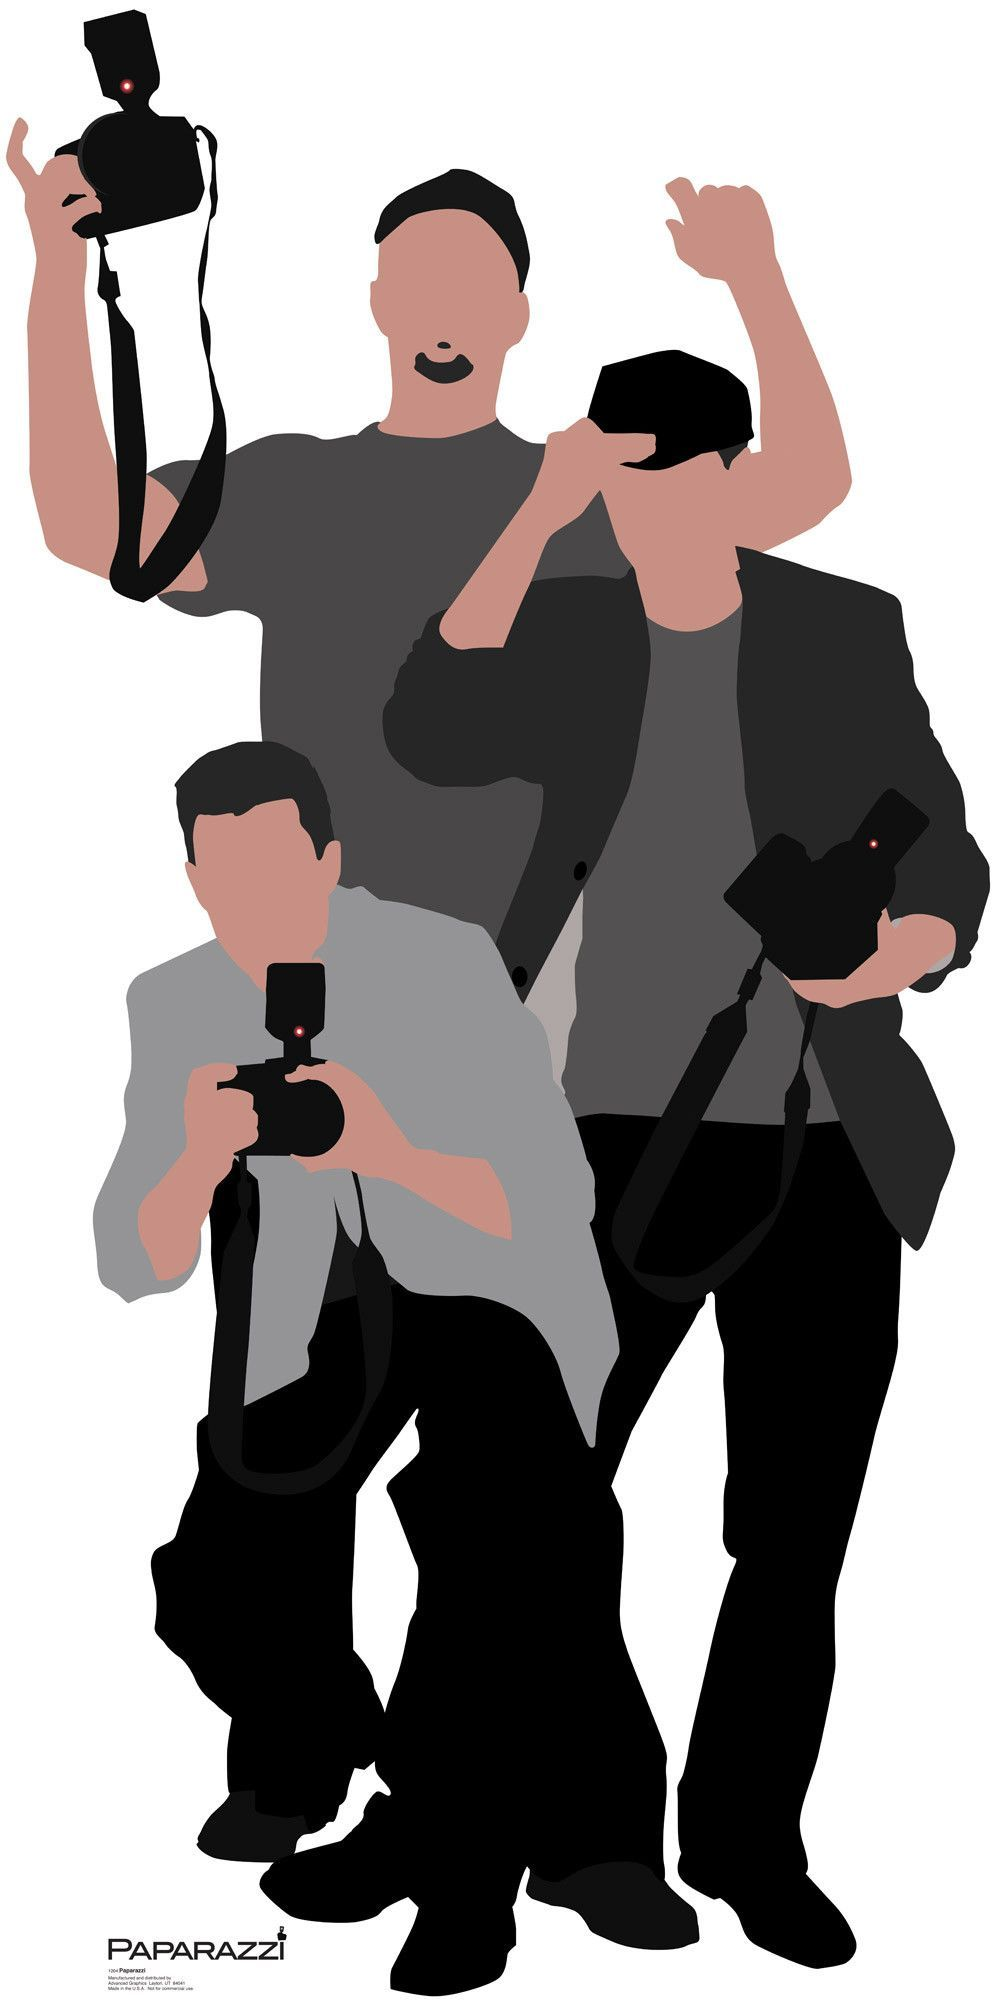 996x2000 Paparazzi Stand Up Photography Ideas Photography